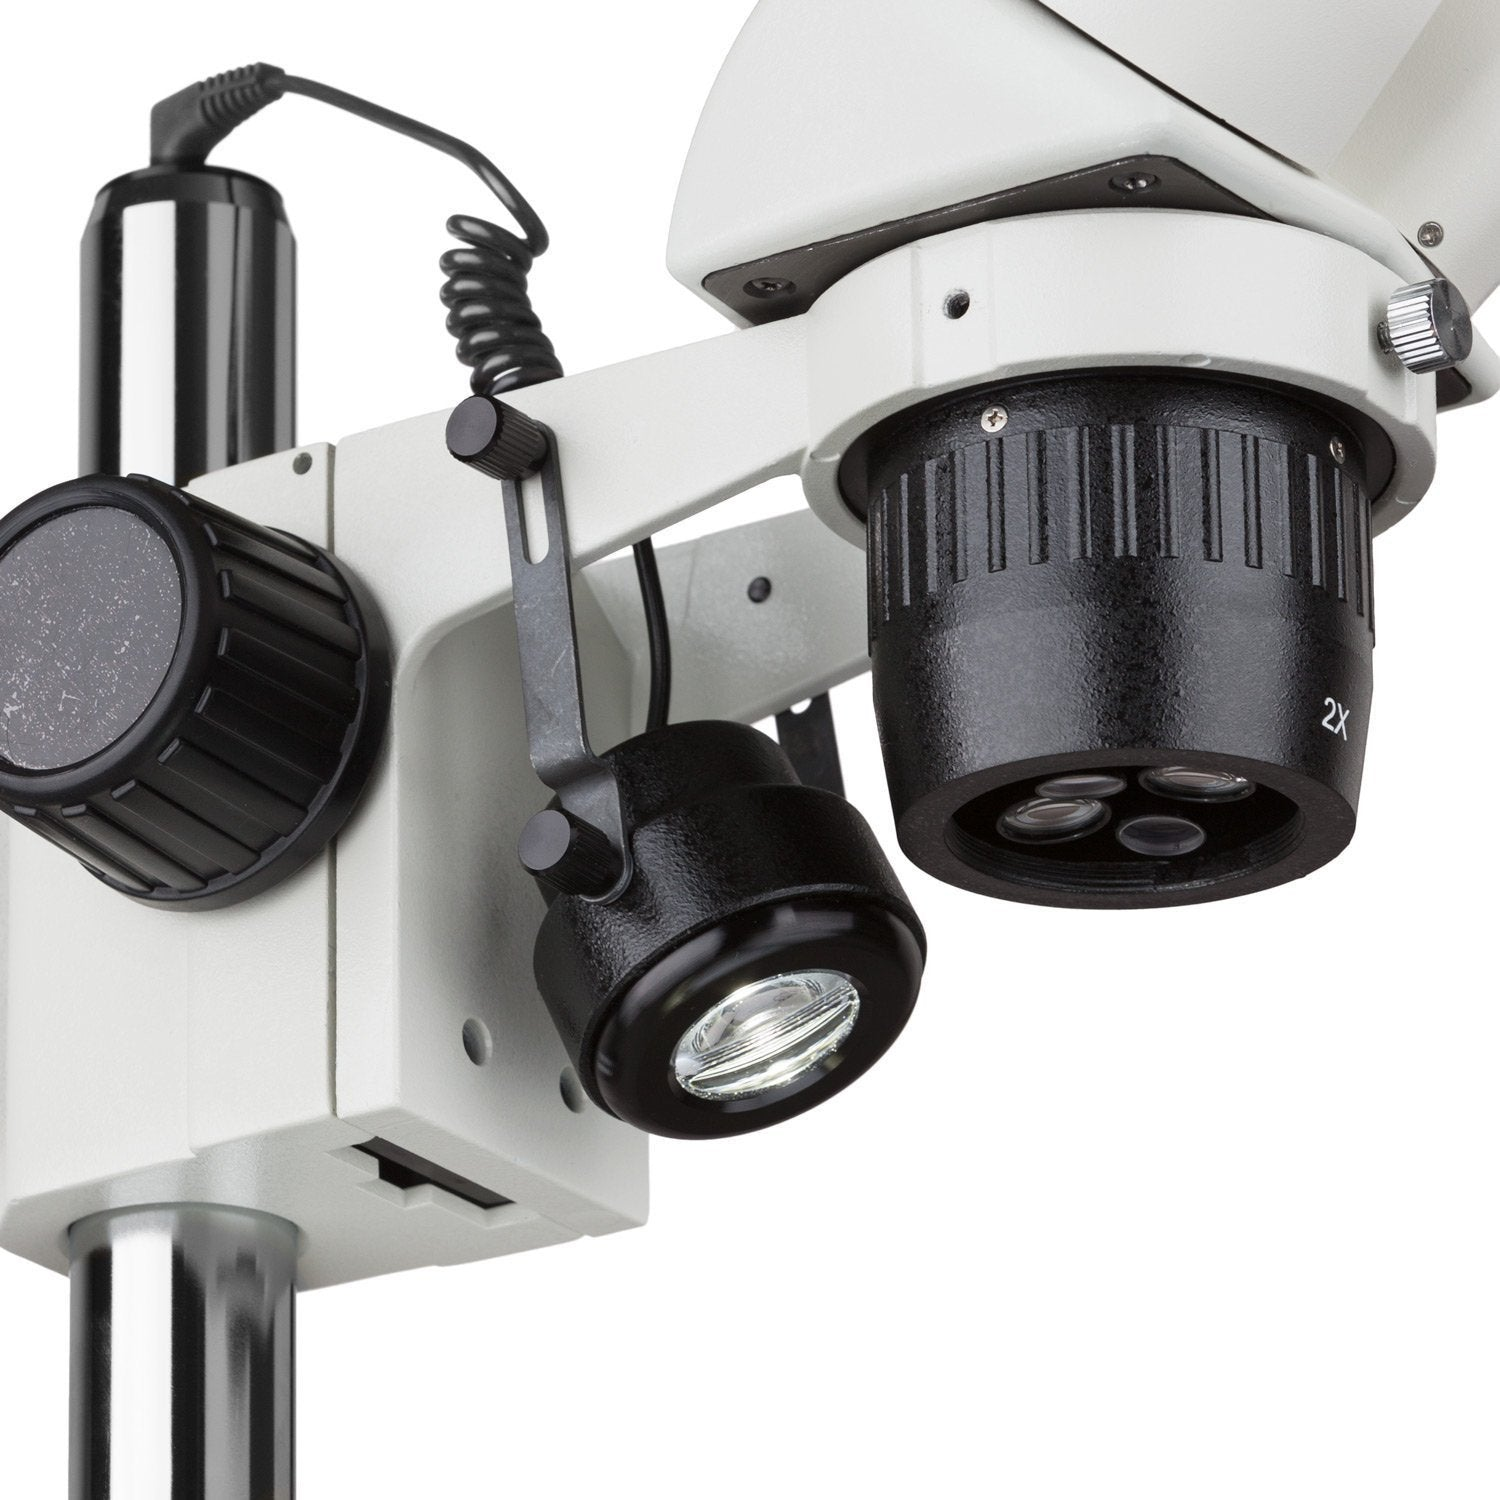 AmScope 10X-30X Multi-Power Pillar Stand Stereo Microscope with Top & Bottom LED Lights